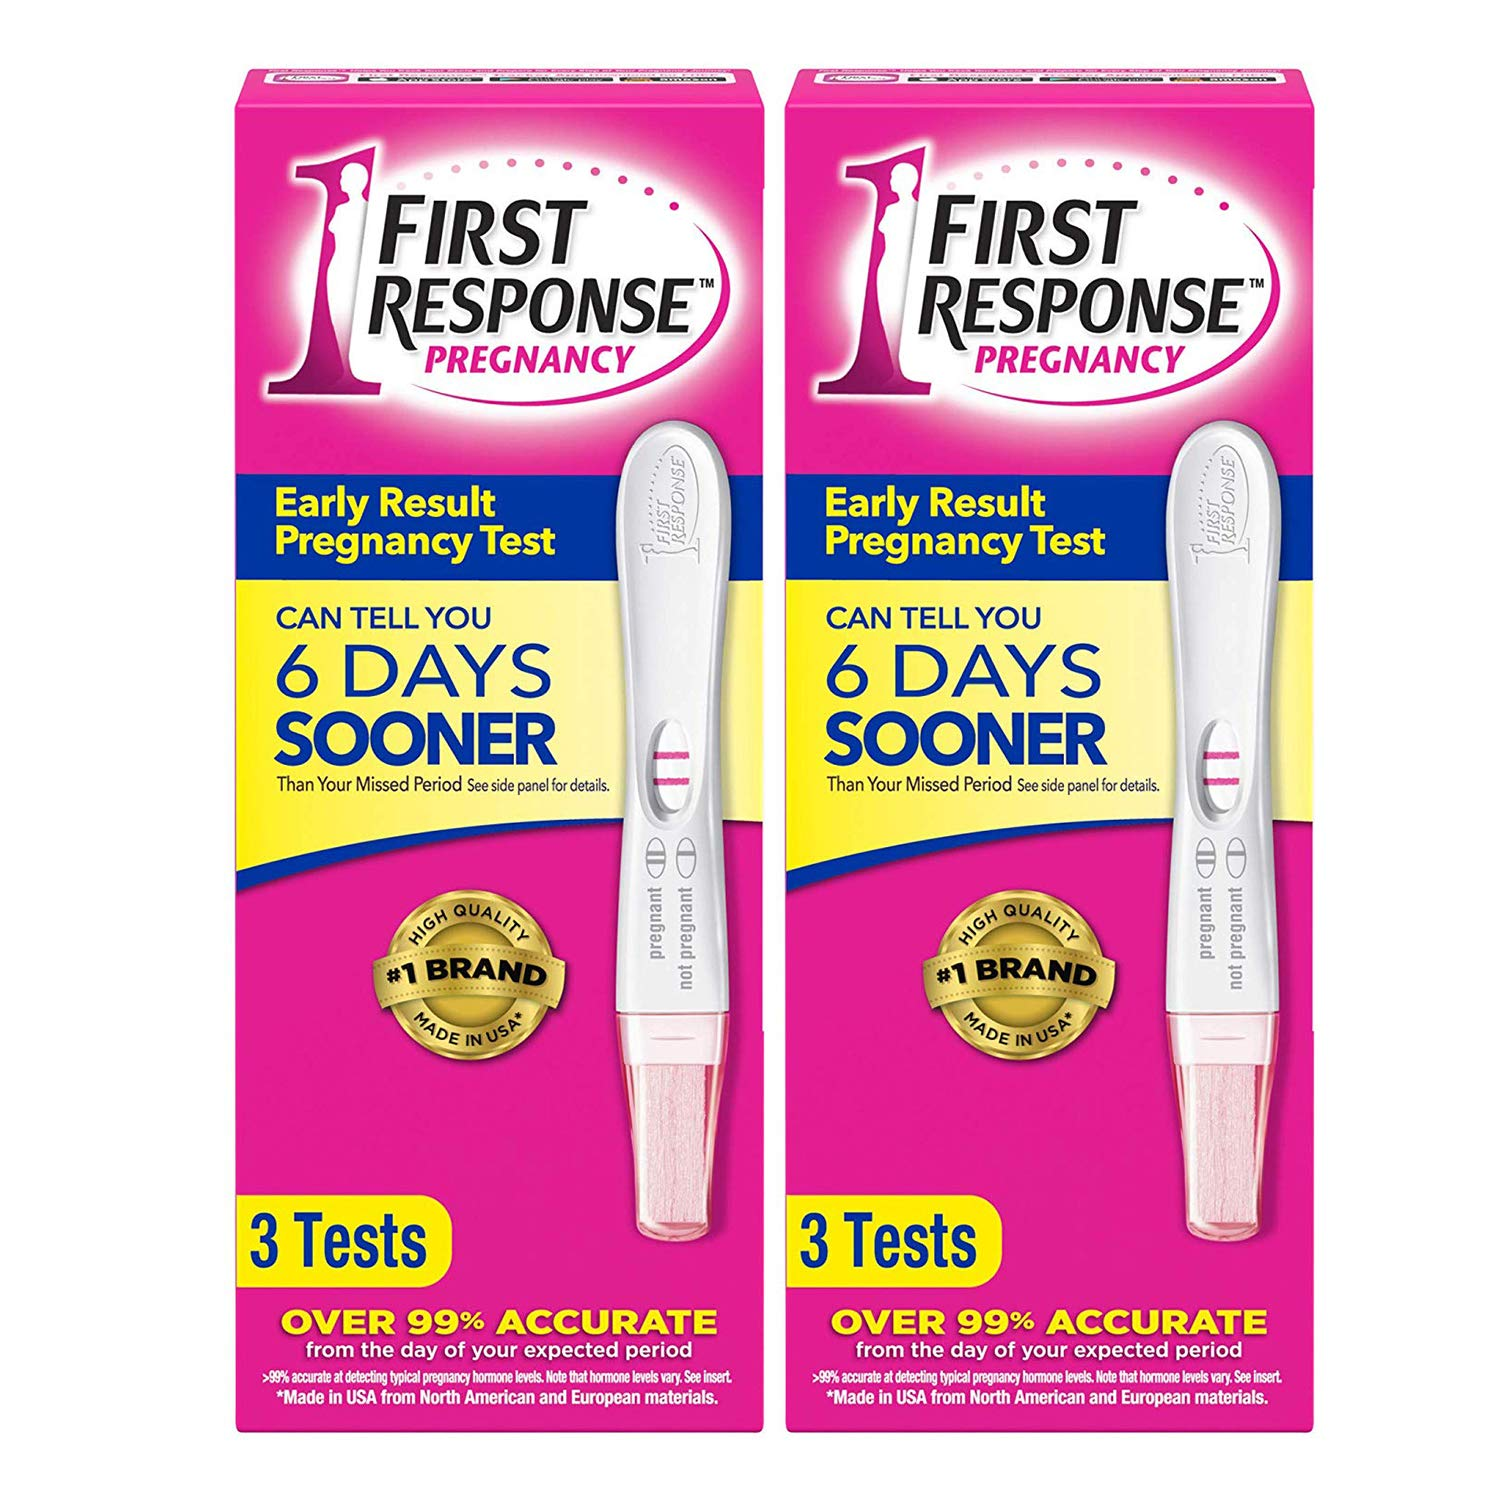 Early Result Pregnancy Test, 3 Tests (Packaging & Test Design May Vary) - 2 Pack by First Response